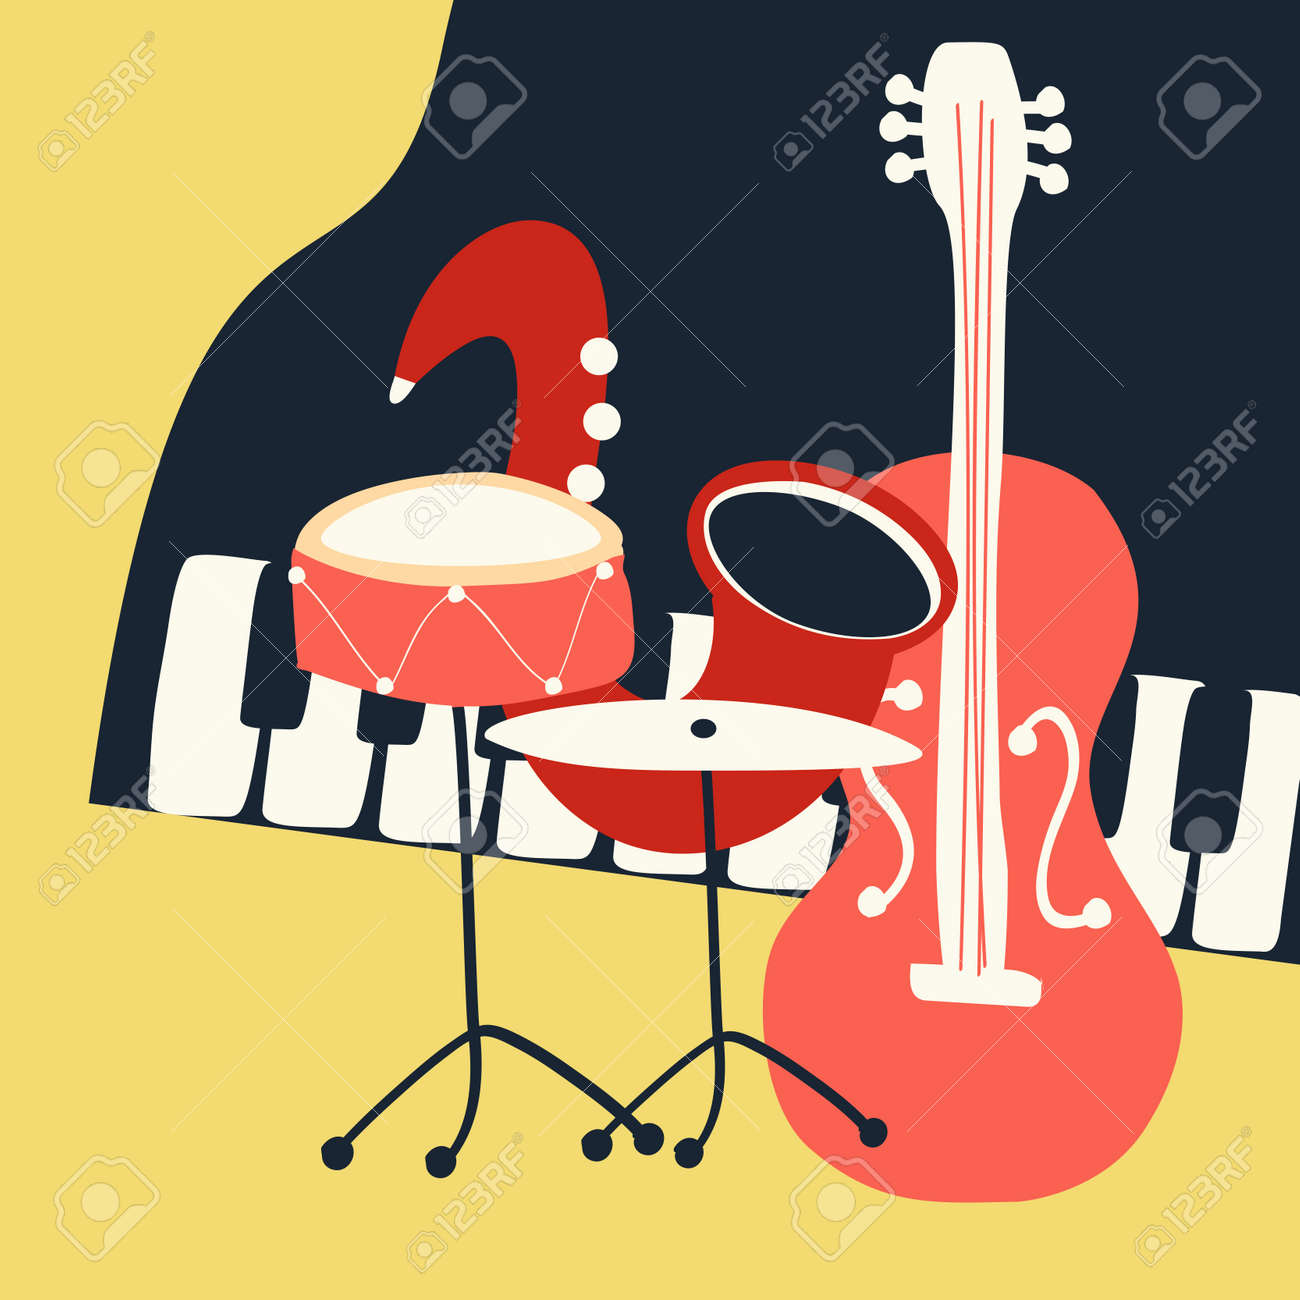 Jazz music festival poster with music instruments  Saxophone,